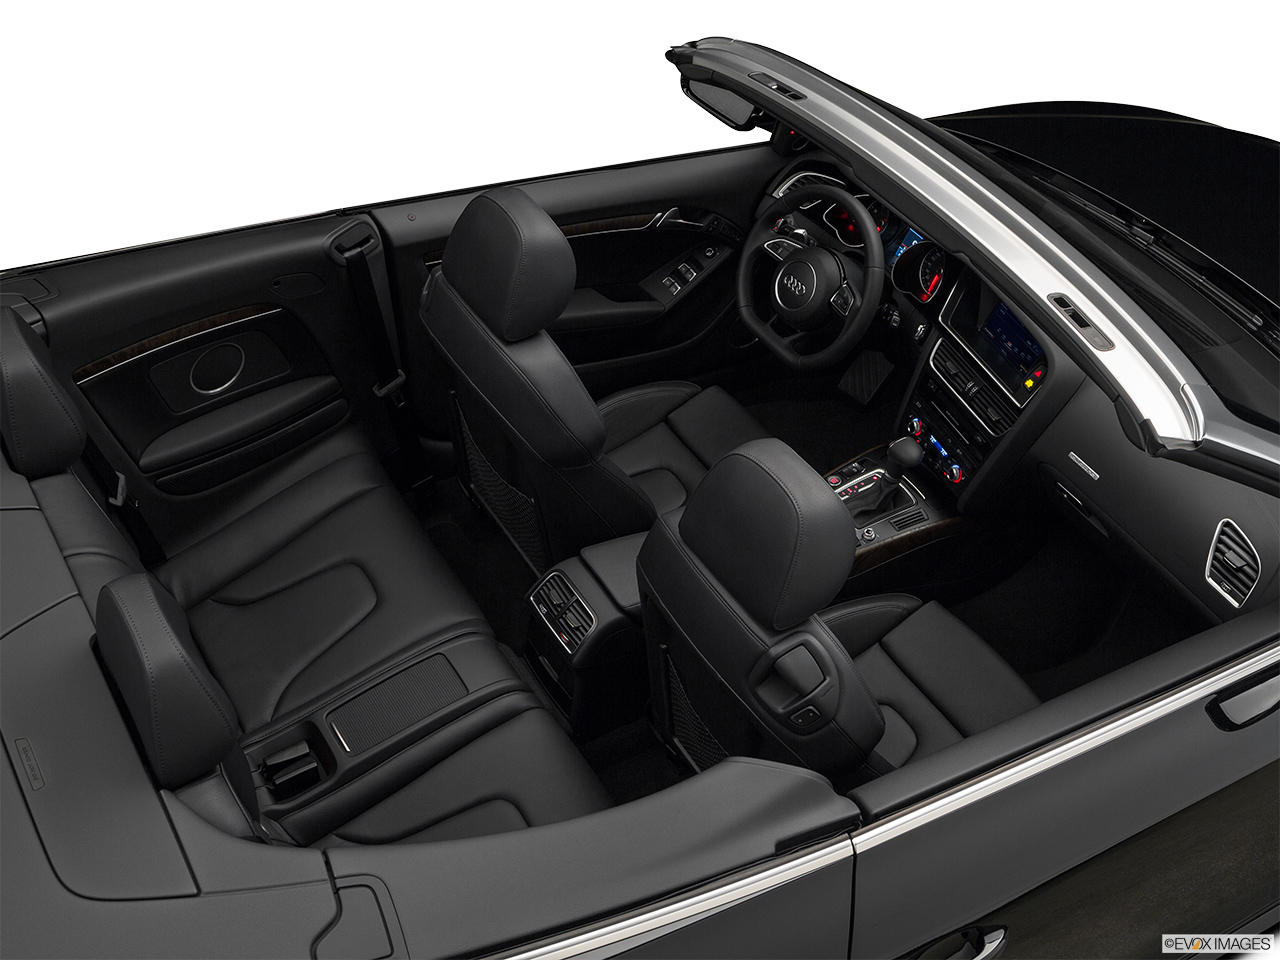 2017 Audi A5 Sport Cabriolet 2.0 TFSI Convertible Hero (high from passenger, looking down into interior).